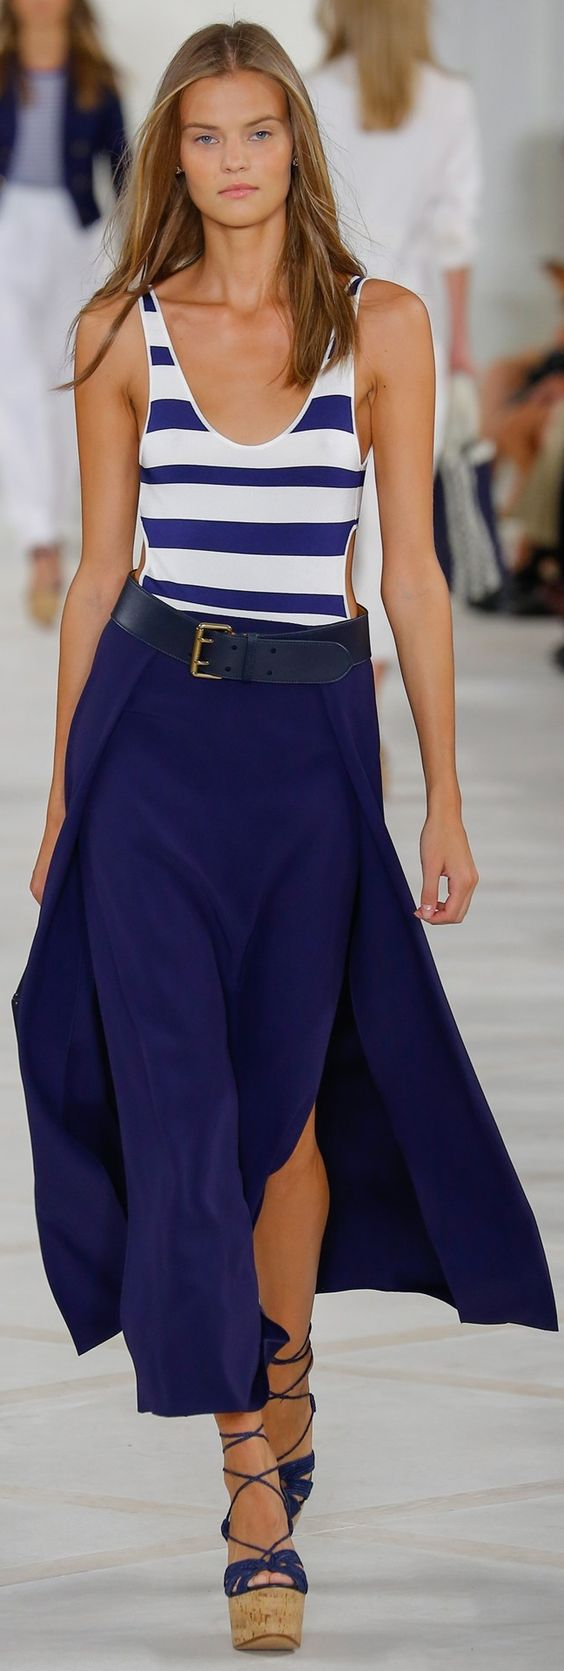 NYFW Ralph Lauren Collection: \u0026quot;My Women\u0026#39;s Collection for Spring 2016 is a modern expression